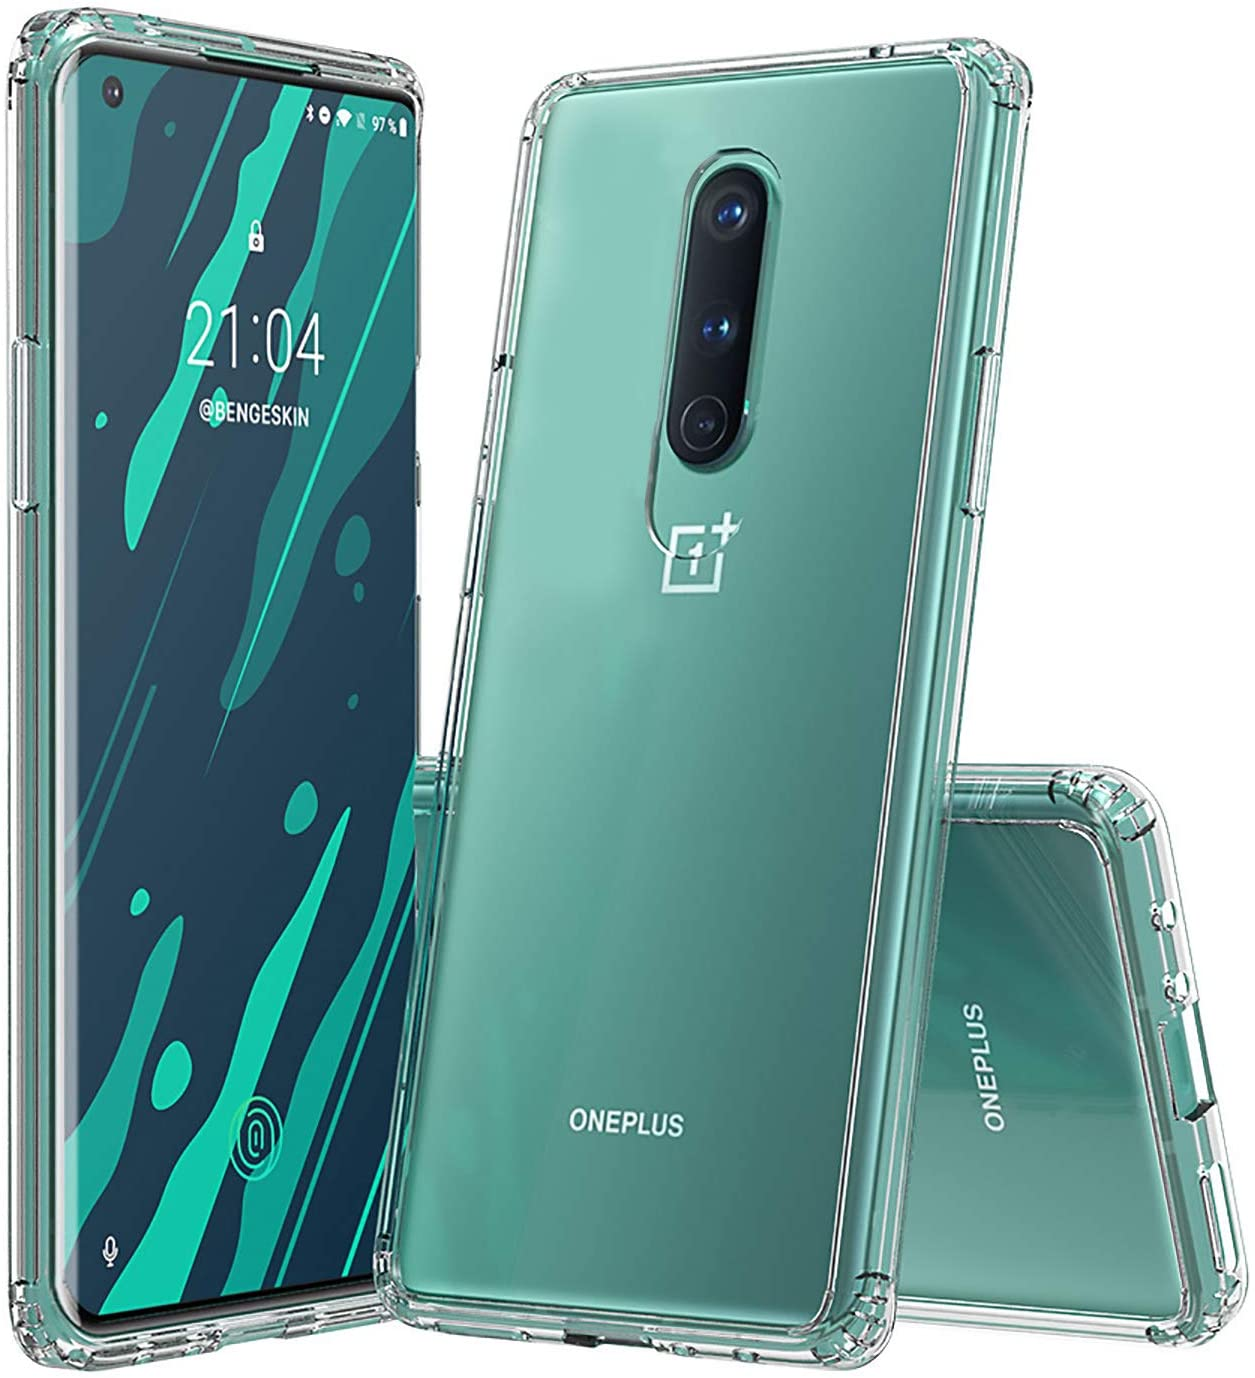 Case for OnePlus 8, Designed for OnePlus 8 Case Made with Hard PC Back and Soft TPU Frame, 360°Comprehensive Protection, Anti-Scratch and Shock Absorption Cover Case. (Transparent, 6.55'')